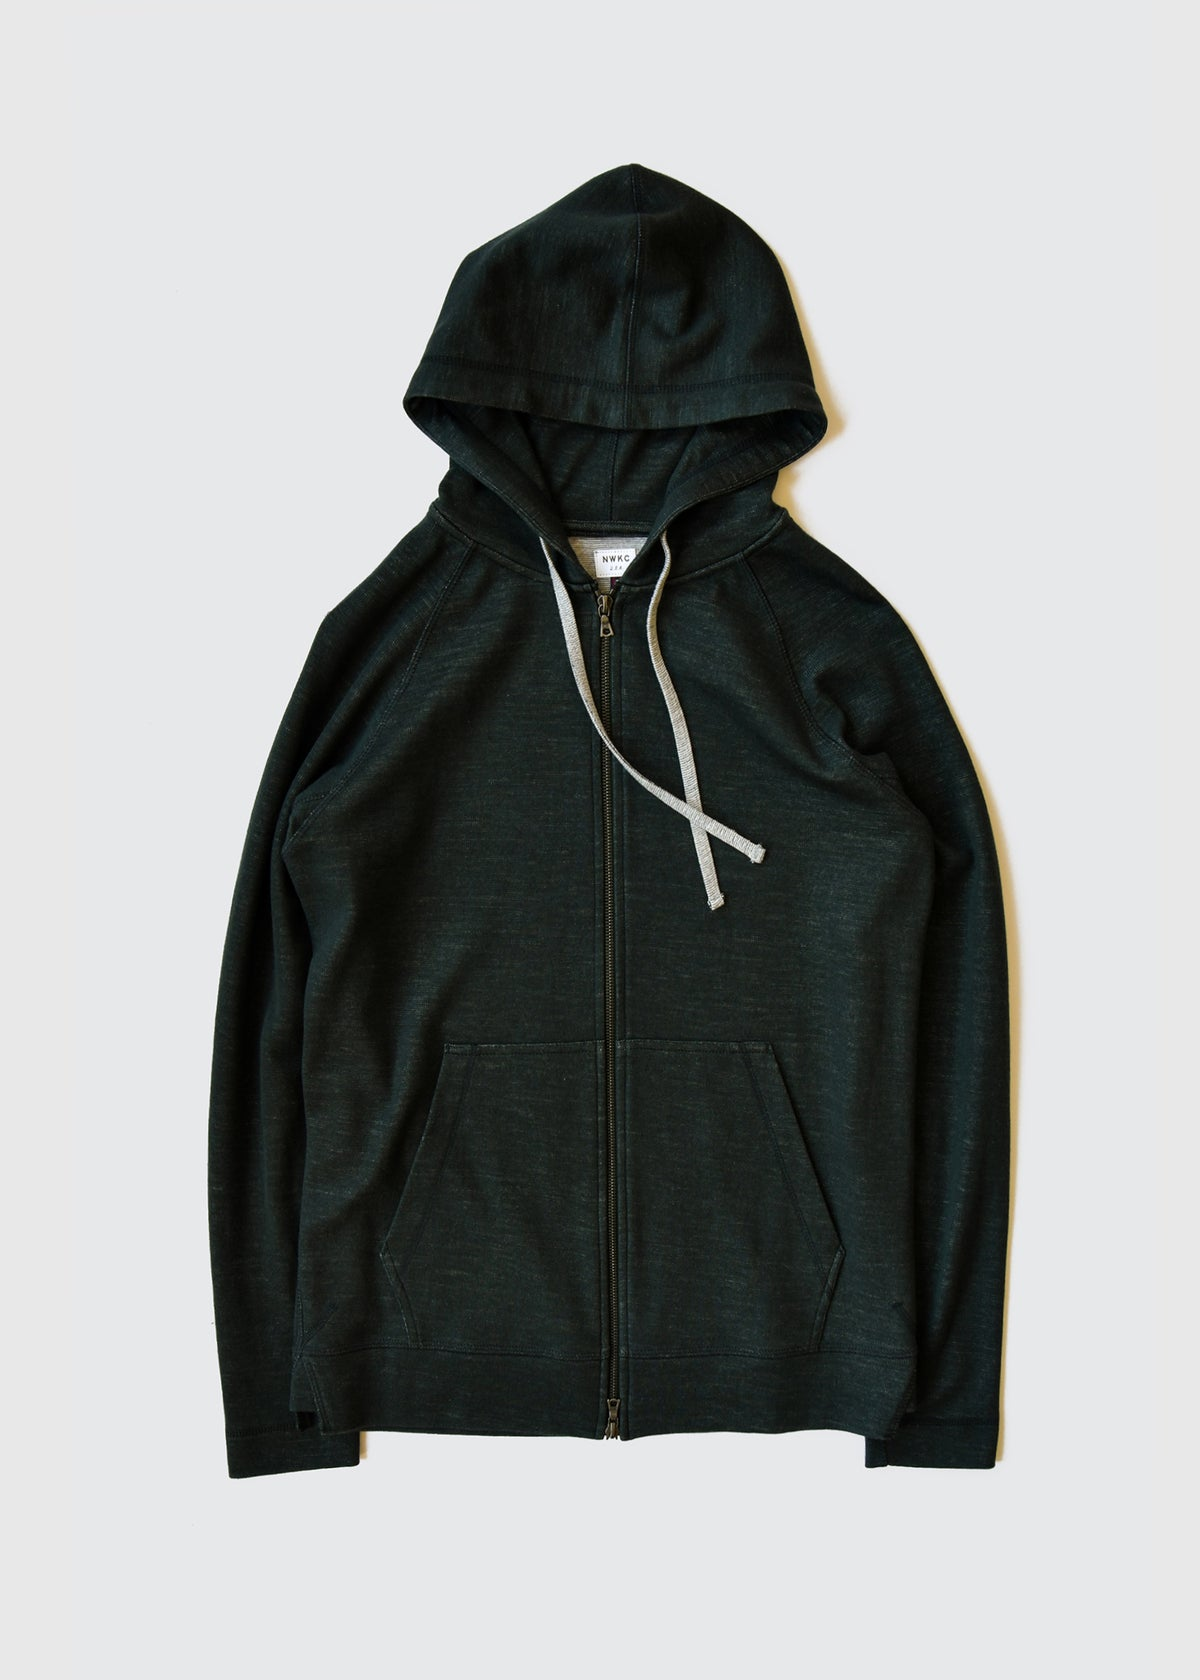 006 - HOODED ZIP - FOREST